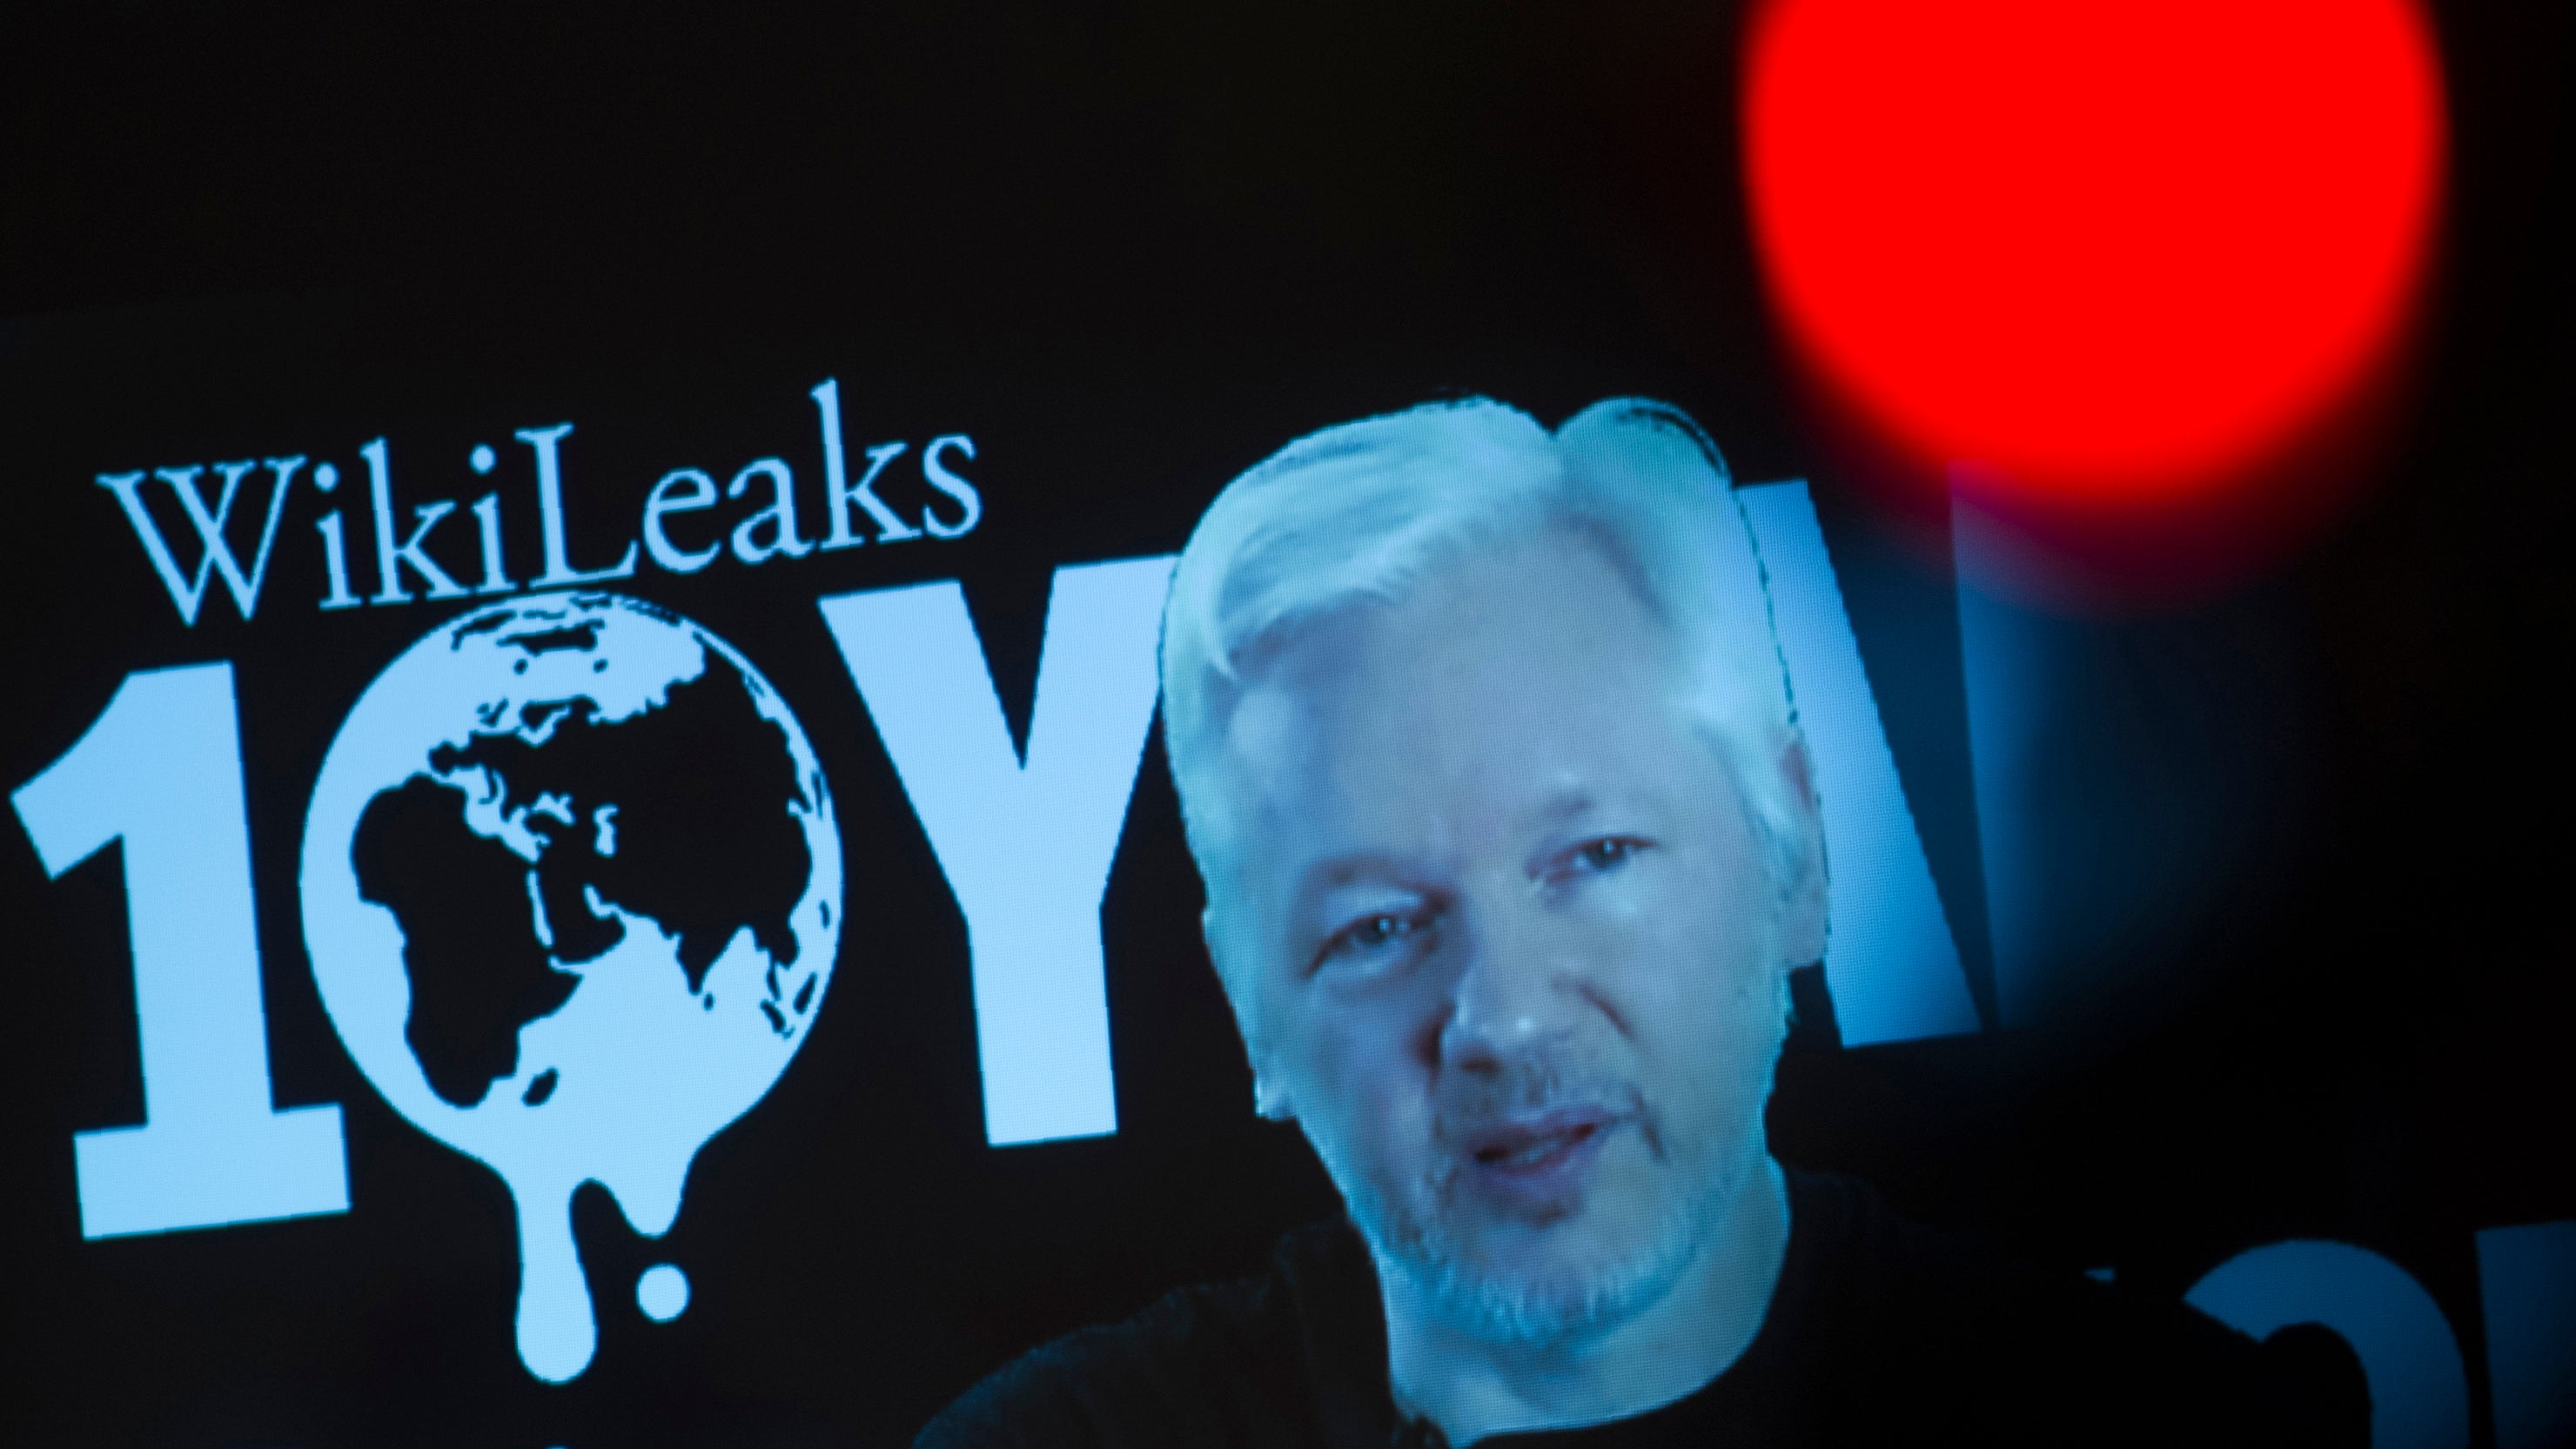 Julian Assange Swears He Didn't Want To Influence The US Election